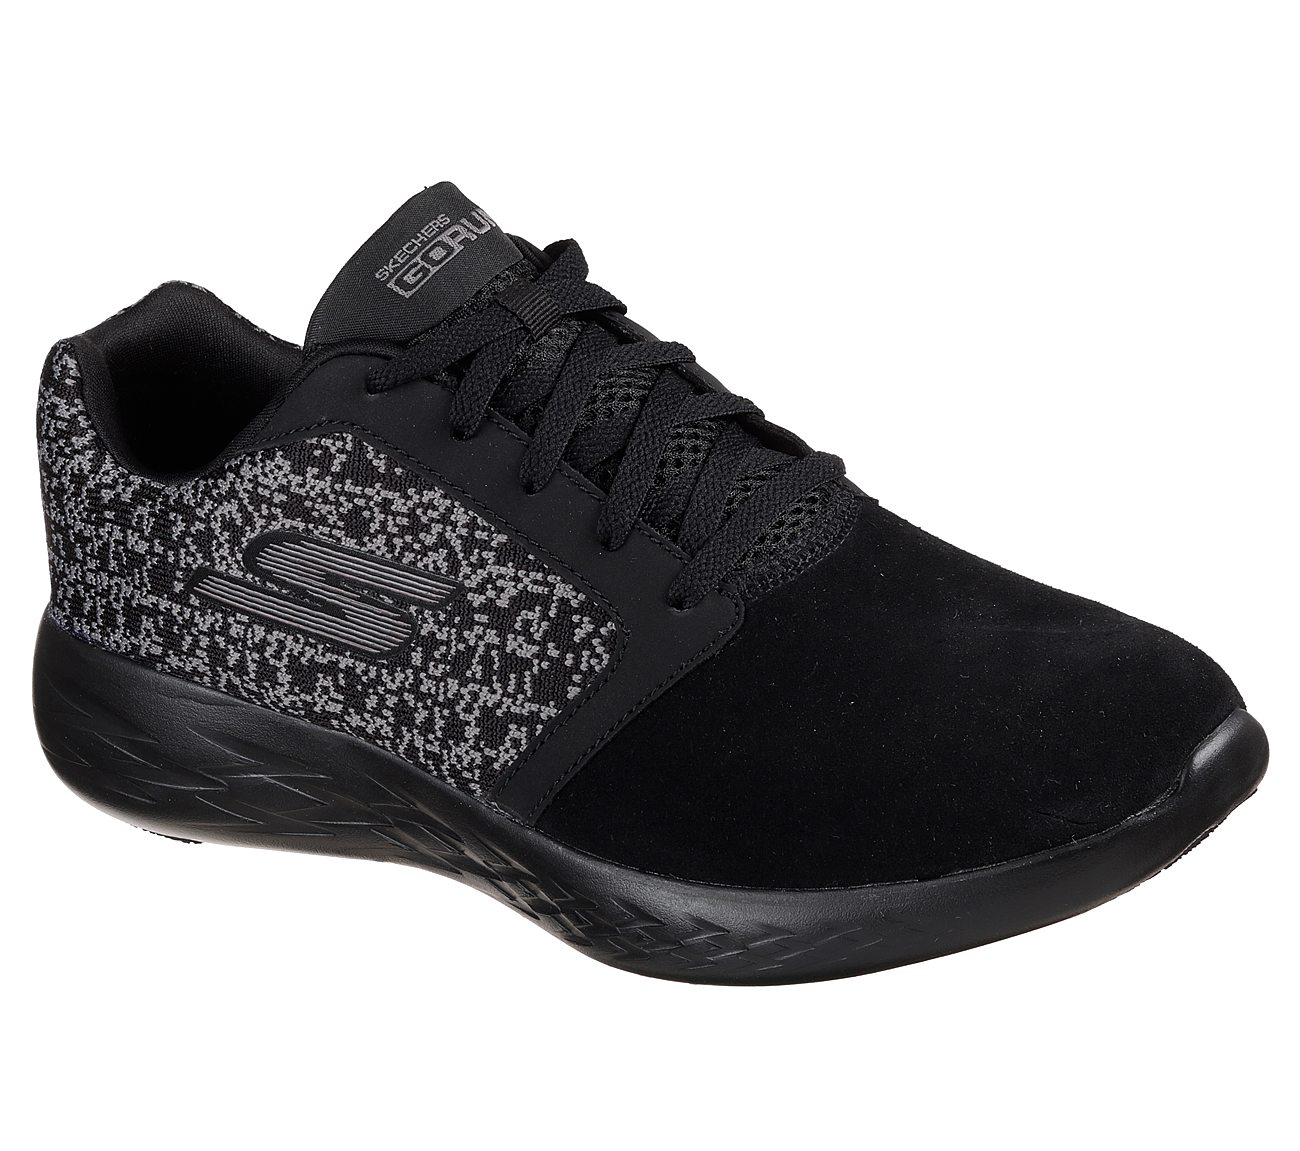 Mens 55060 Fitness Shoes Skechers